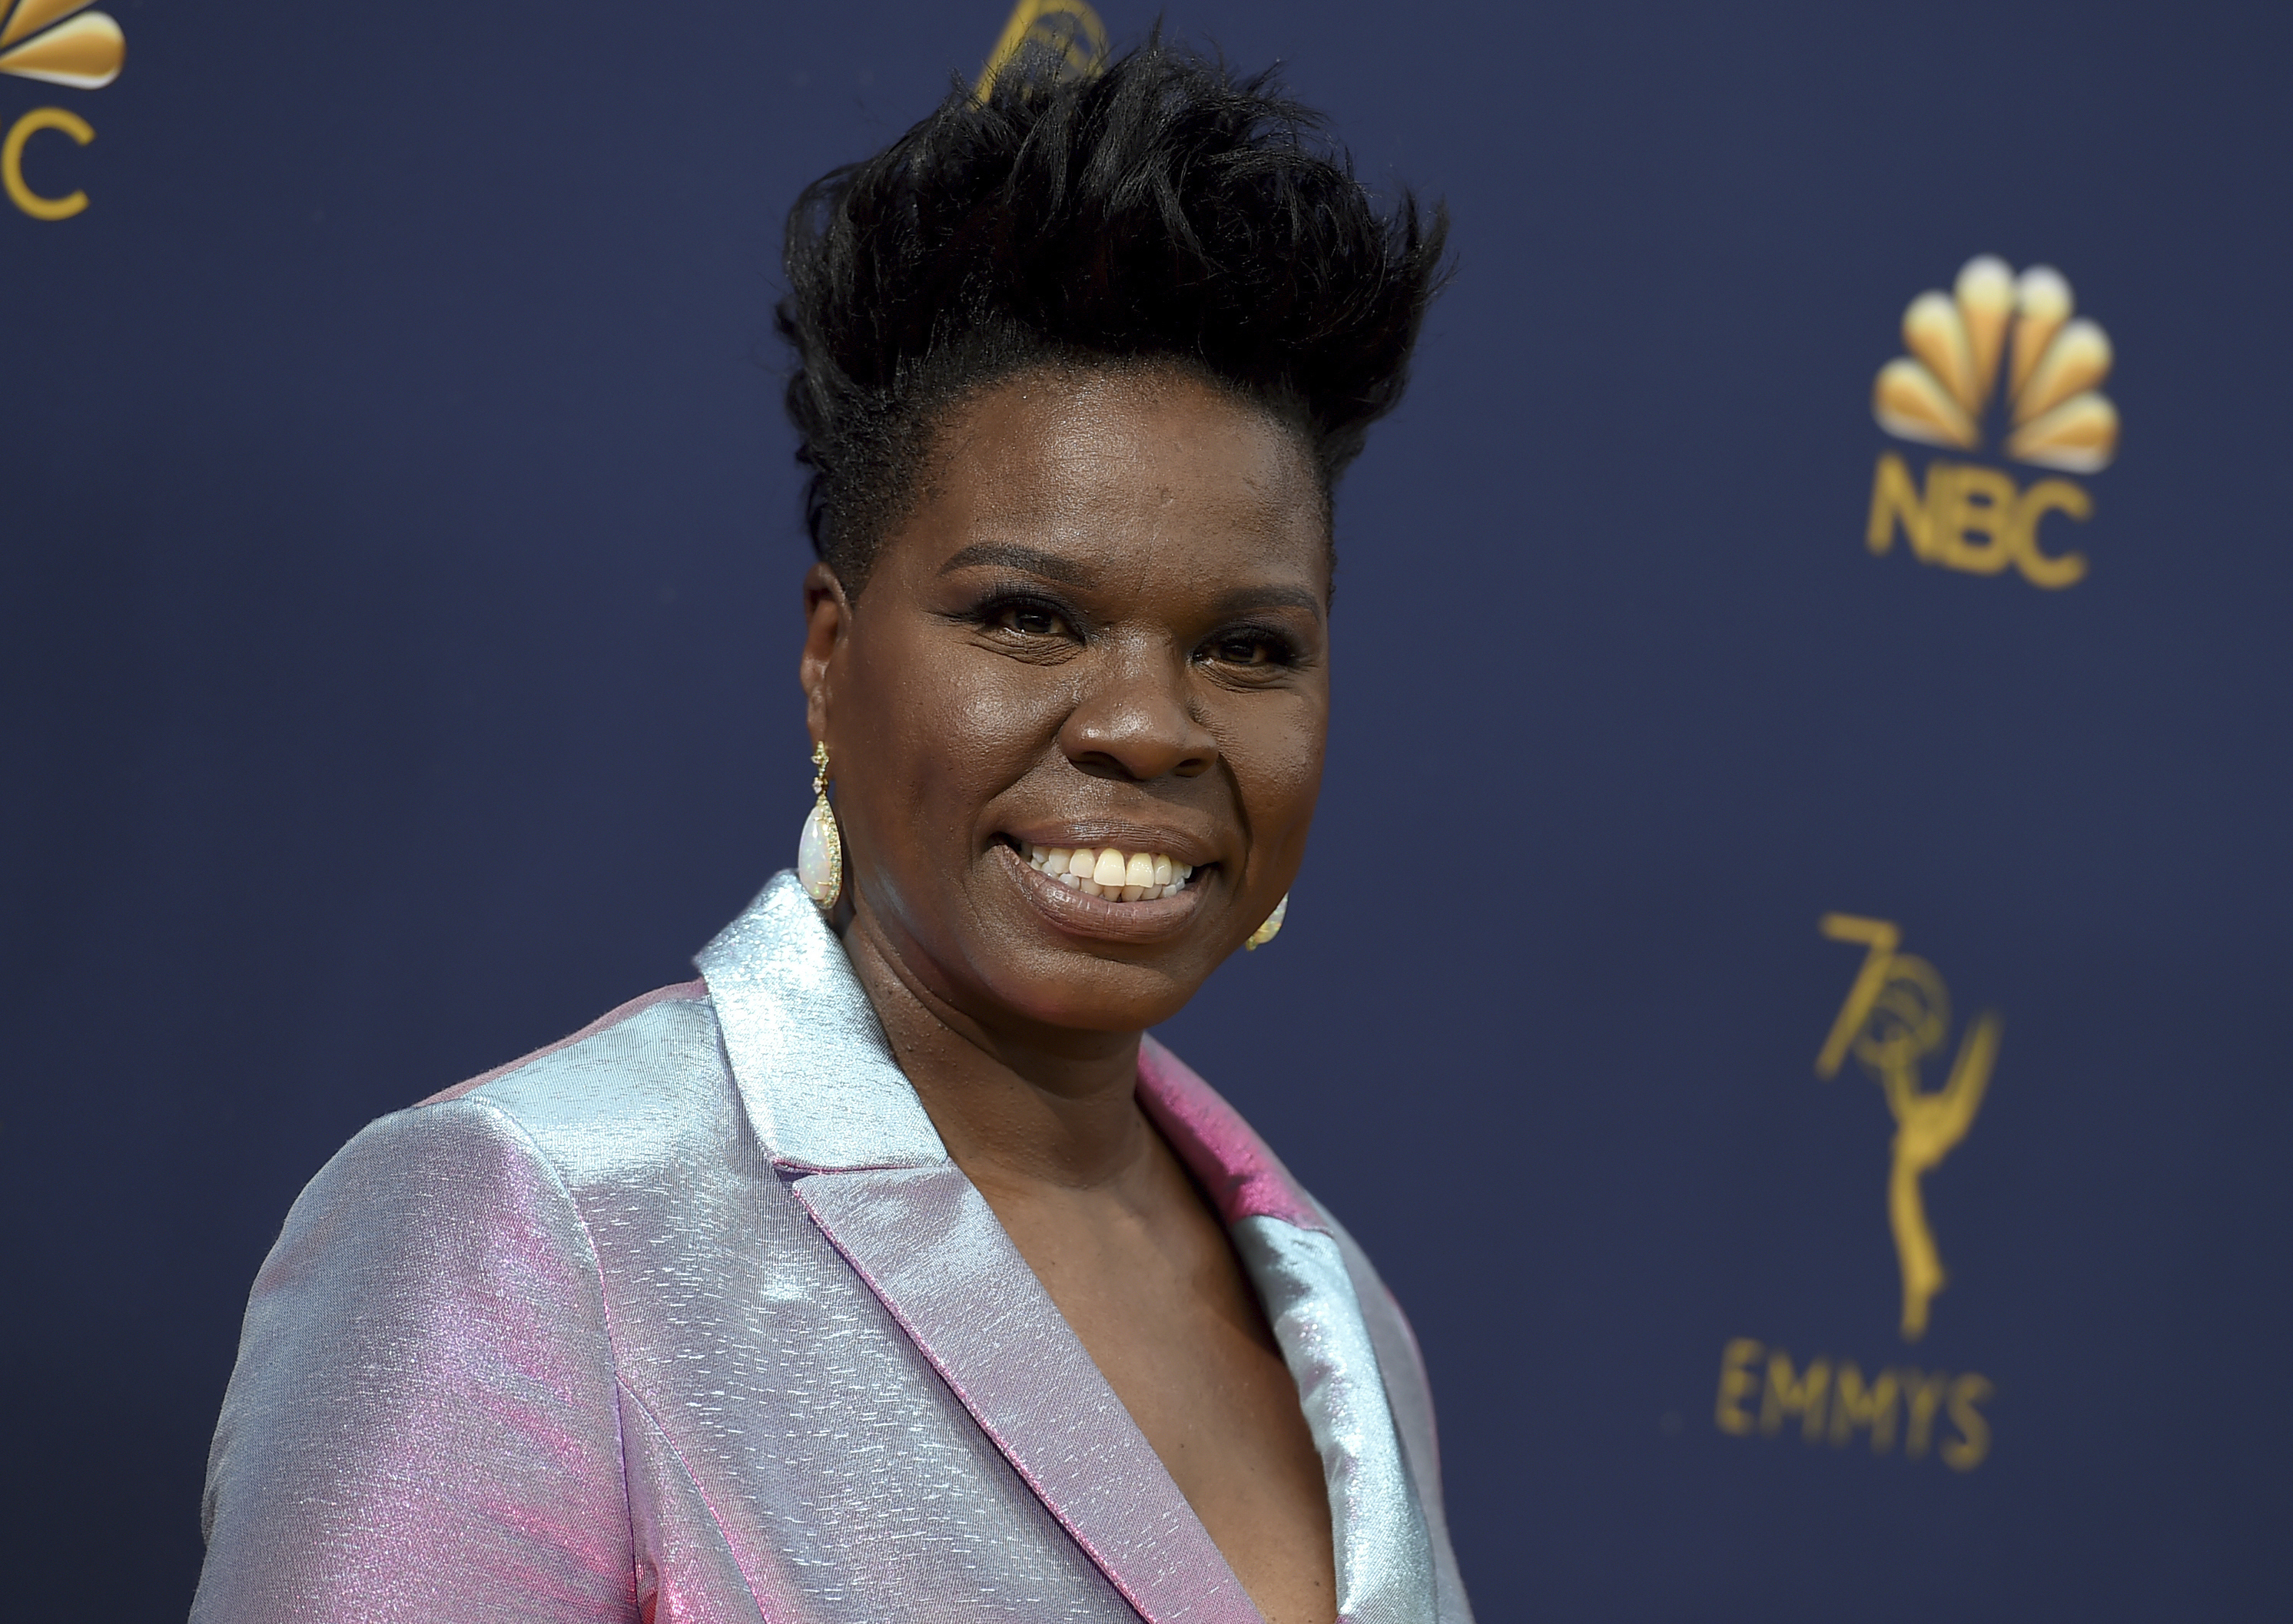 Leslie Jones at the 70th Primetime Emmy Awards in Los Angeles in 2018.